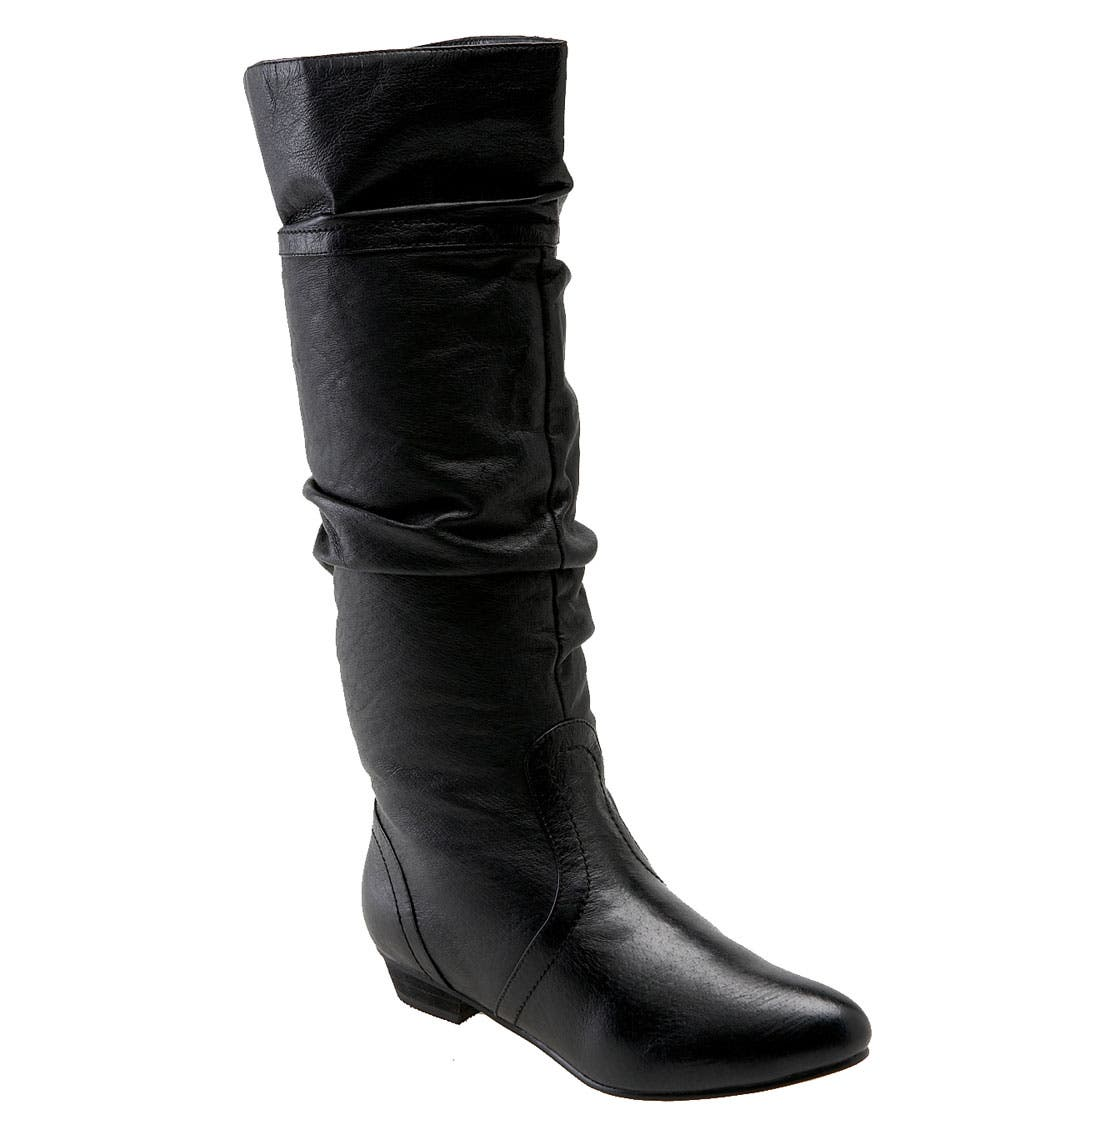 Main Image - Steve Madden 'Candence' Boot